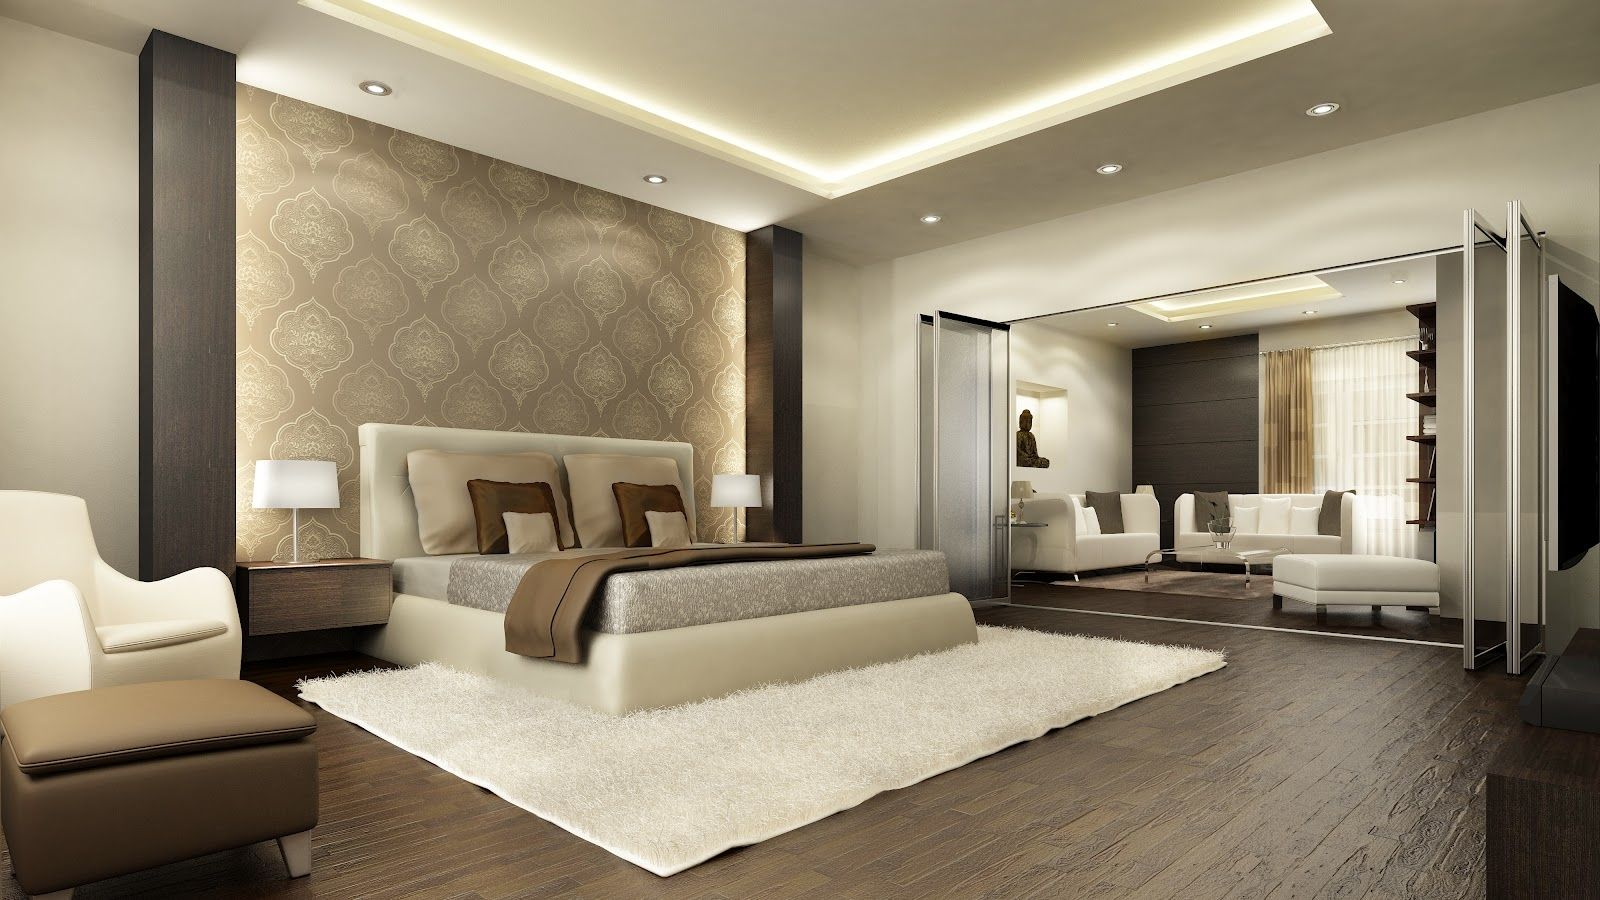 Bedroom Interior : Sophisticated Penthouse Master Bedroom ...